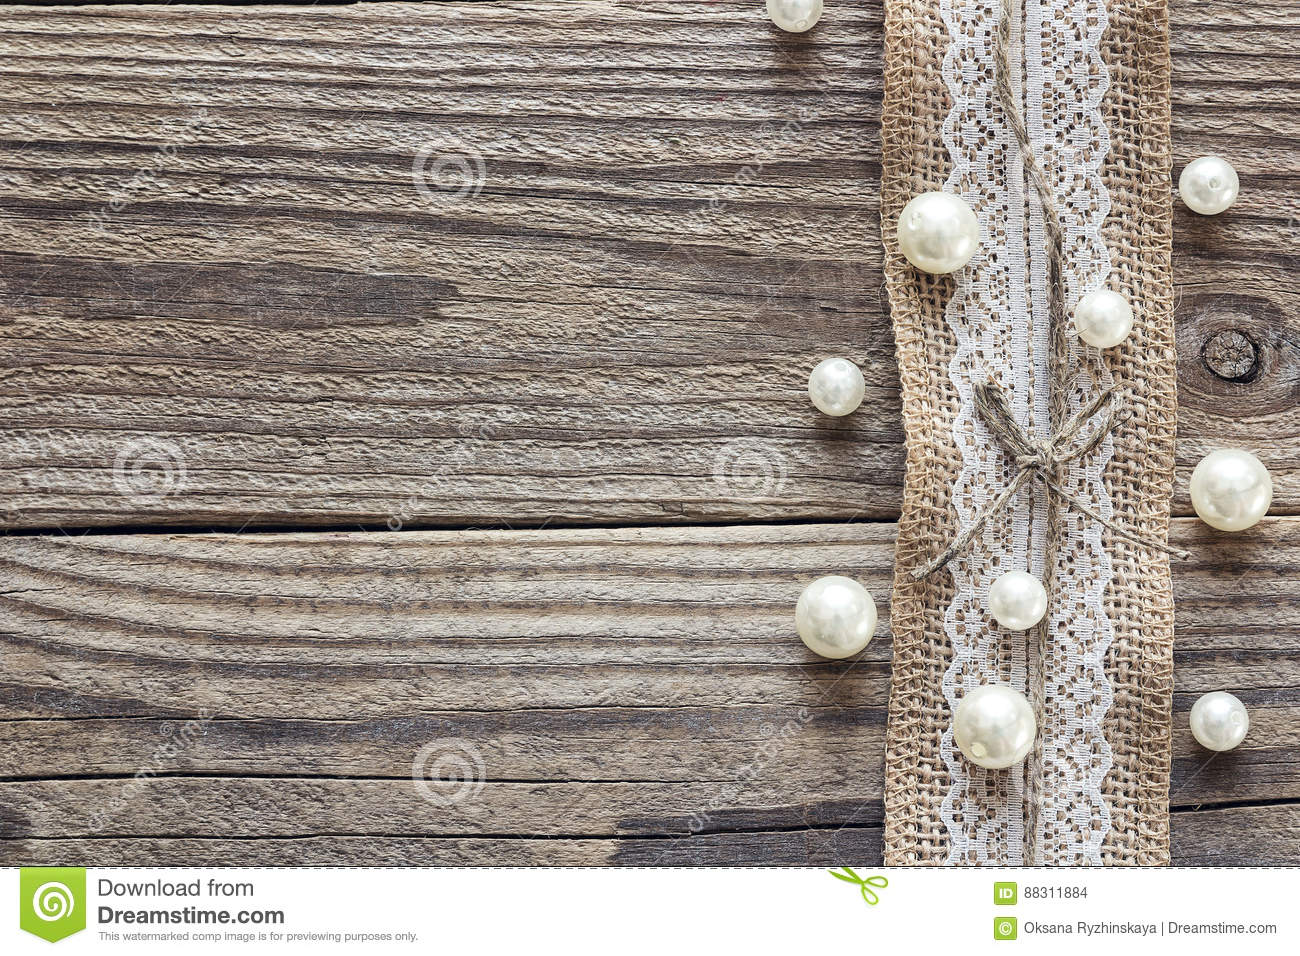 Border of burlap with white lace and beads on old wooden table.